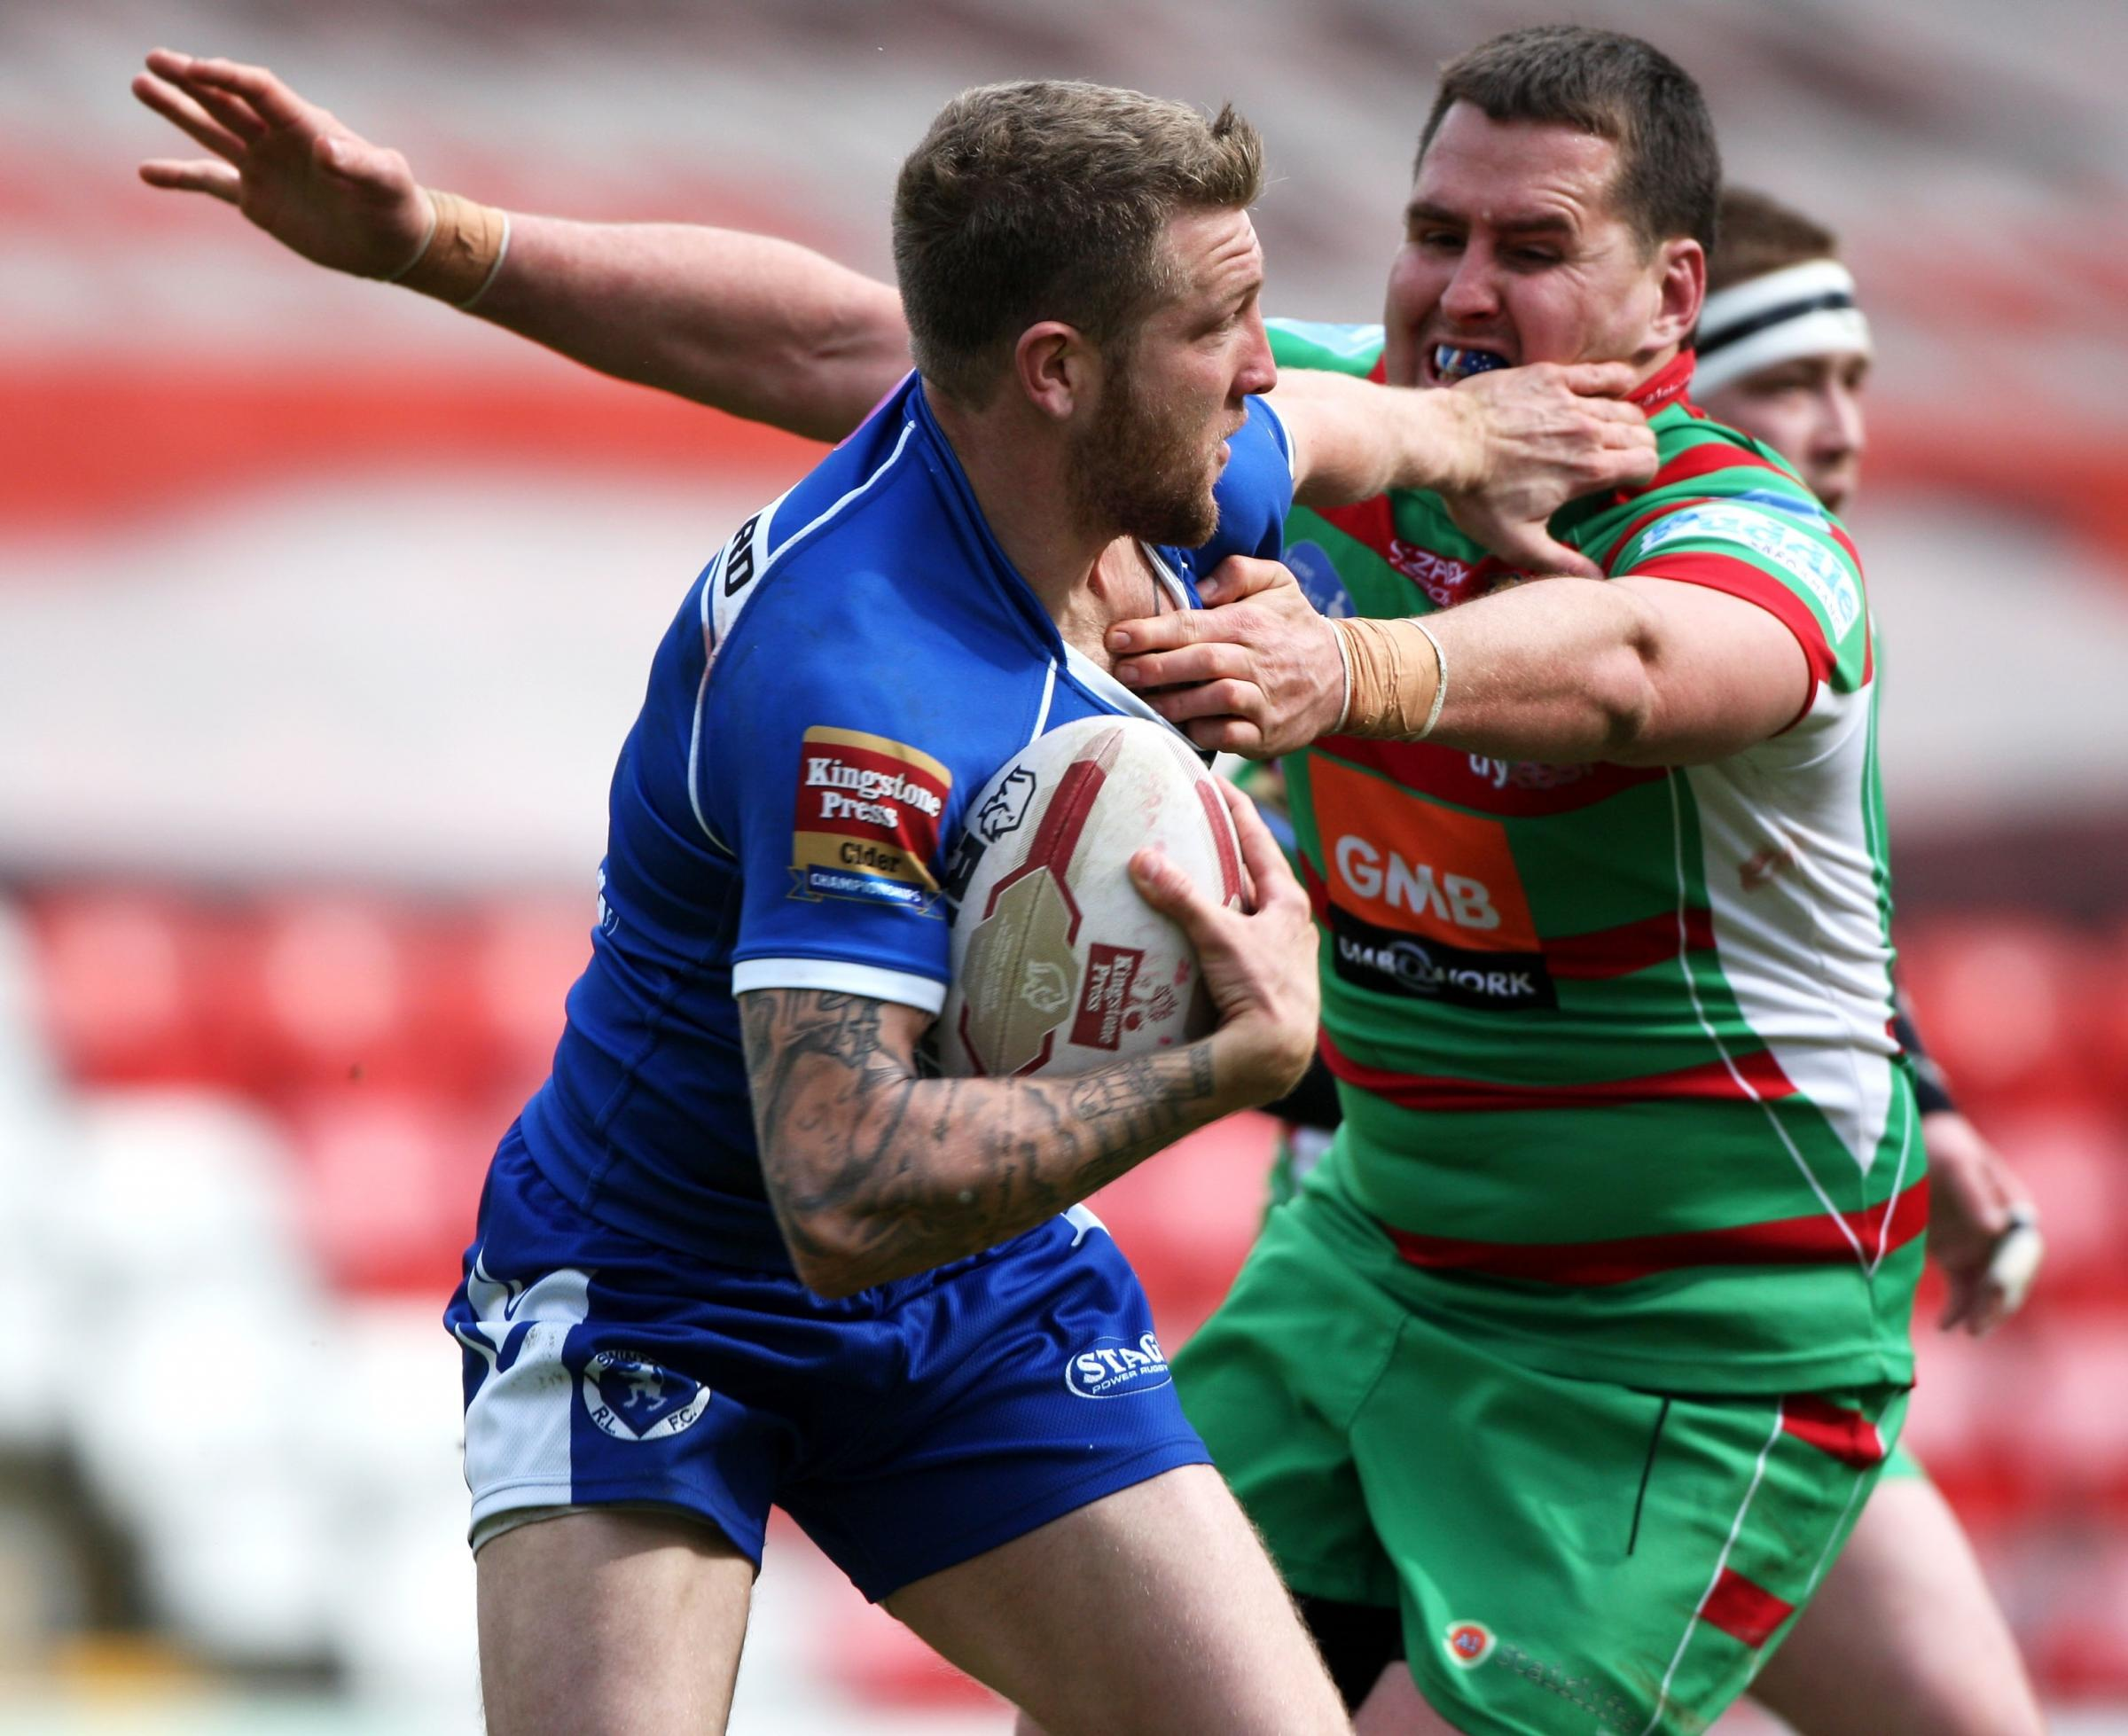 Ritchie Hawkyard fends off Brendon Rawlins during a Challenge Cup tie between Swinton and Cougars in 2014 at the Leigh Sports Village